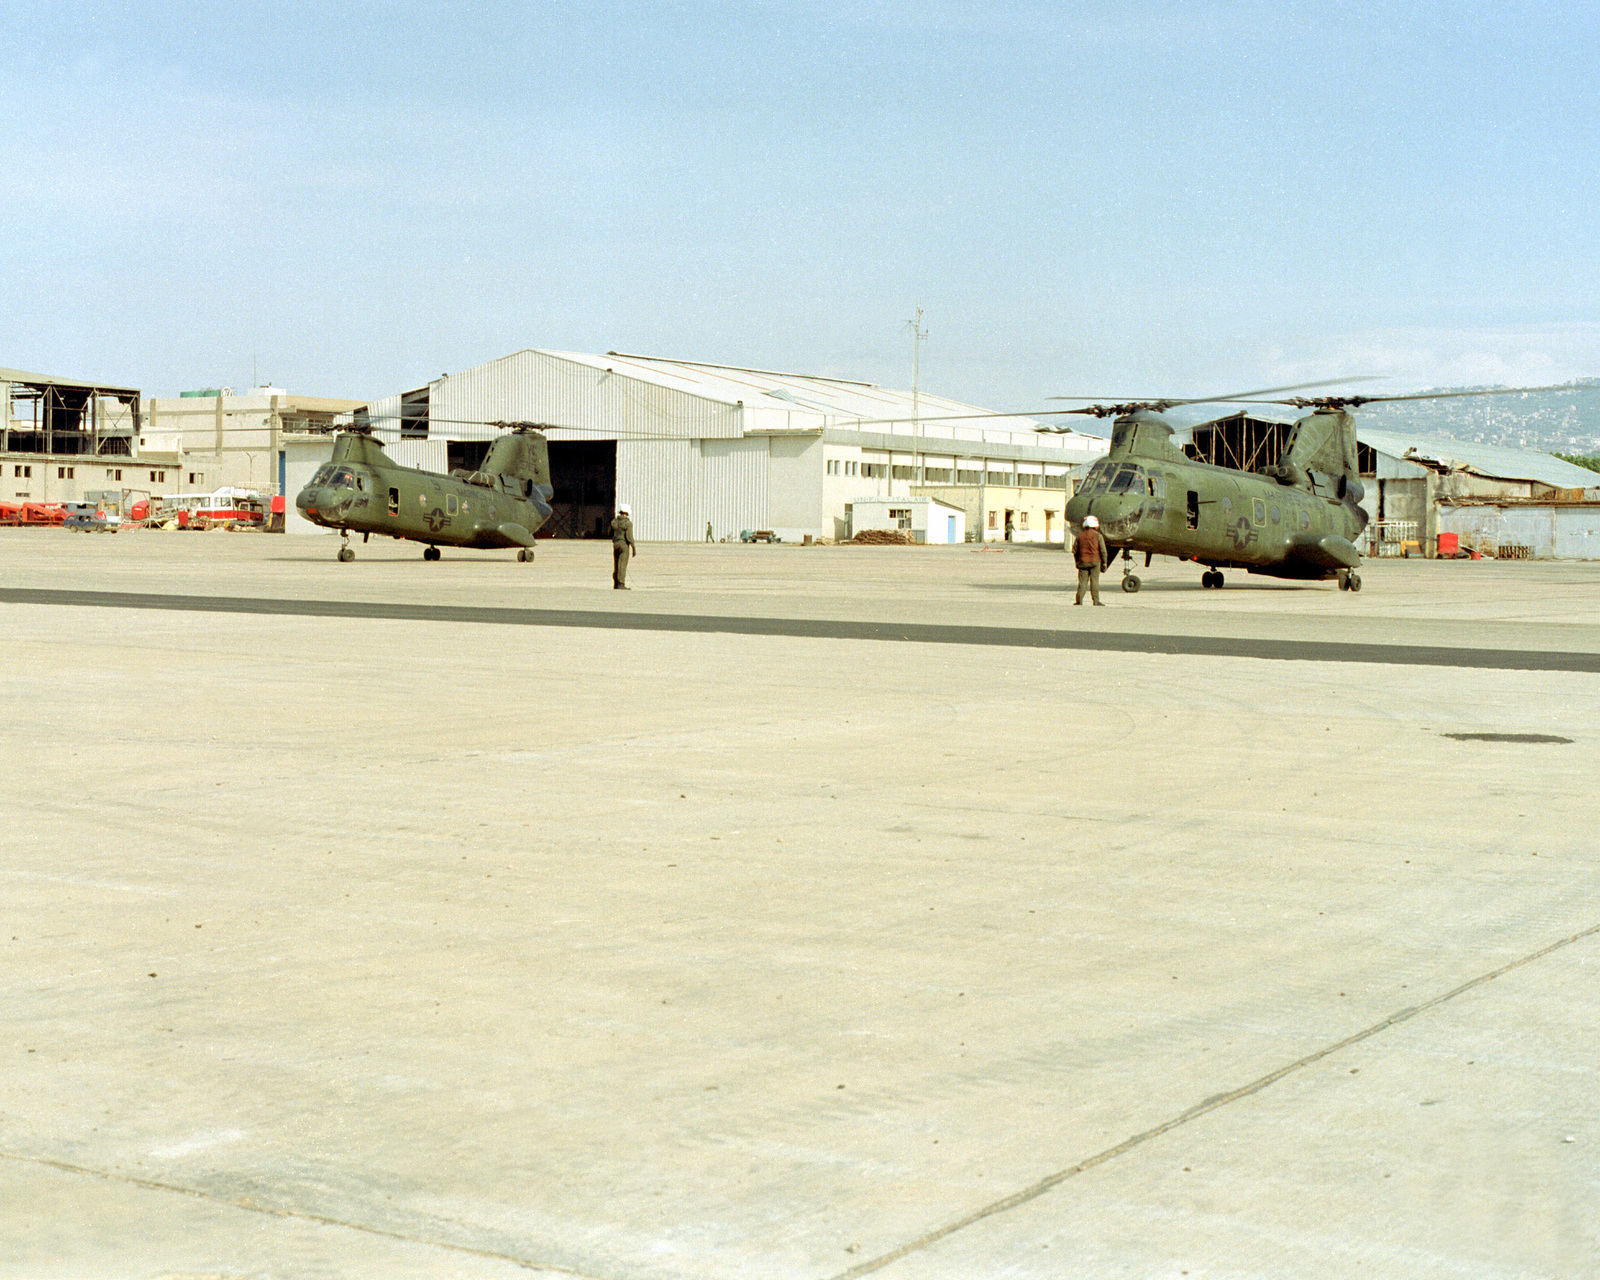 U.S. Marines prepare to load mail into CH-46 Sea Knight helicopters at Beirut International Airport. The Marines have been deployed in Lebanon as part of a multi-national peacekeeping force following confrontation between Israeli forces and the Palestine Liberation Organization